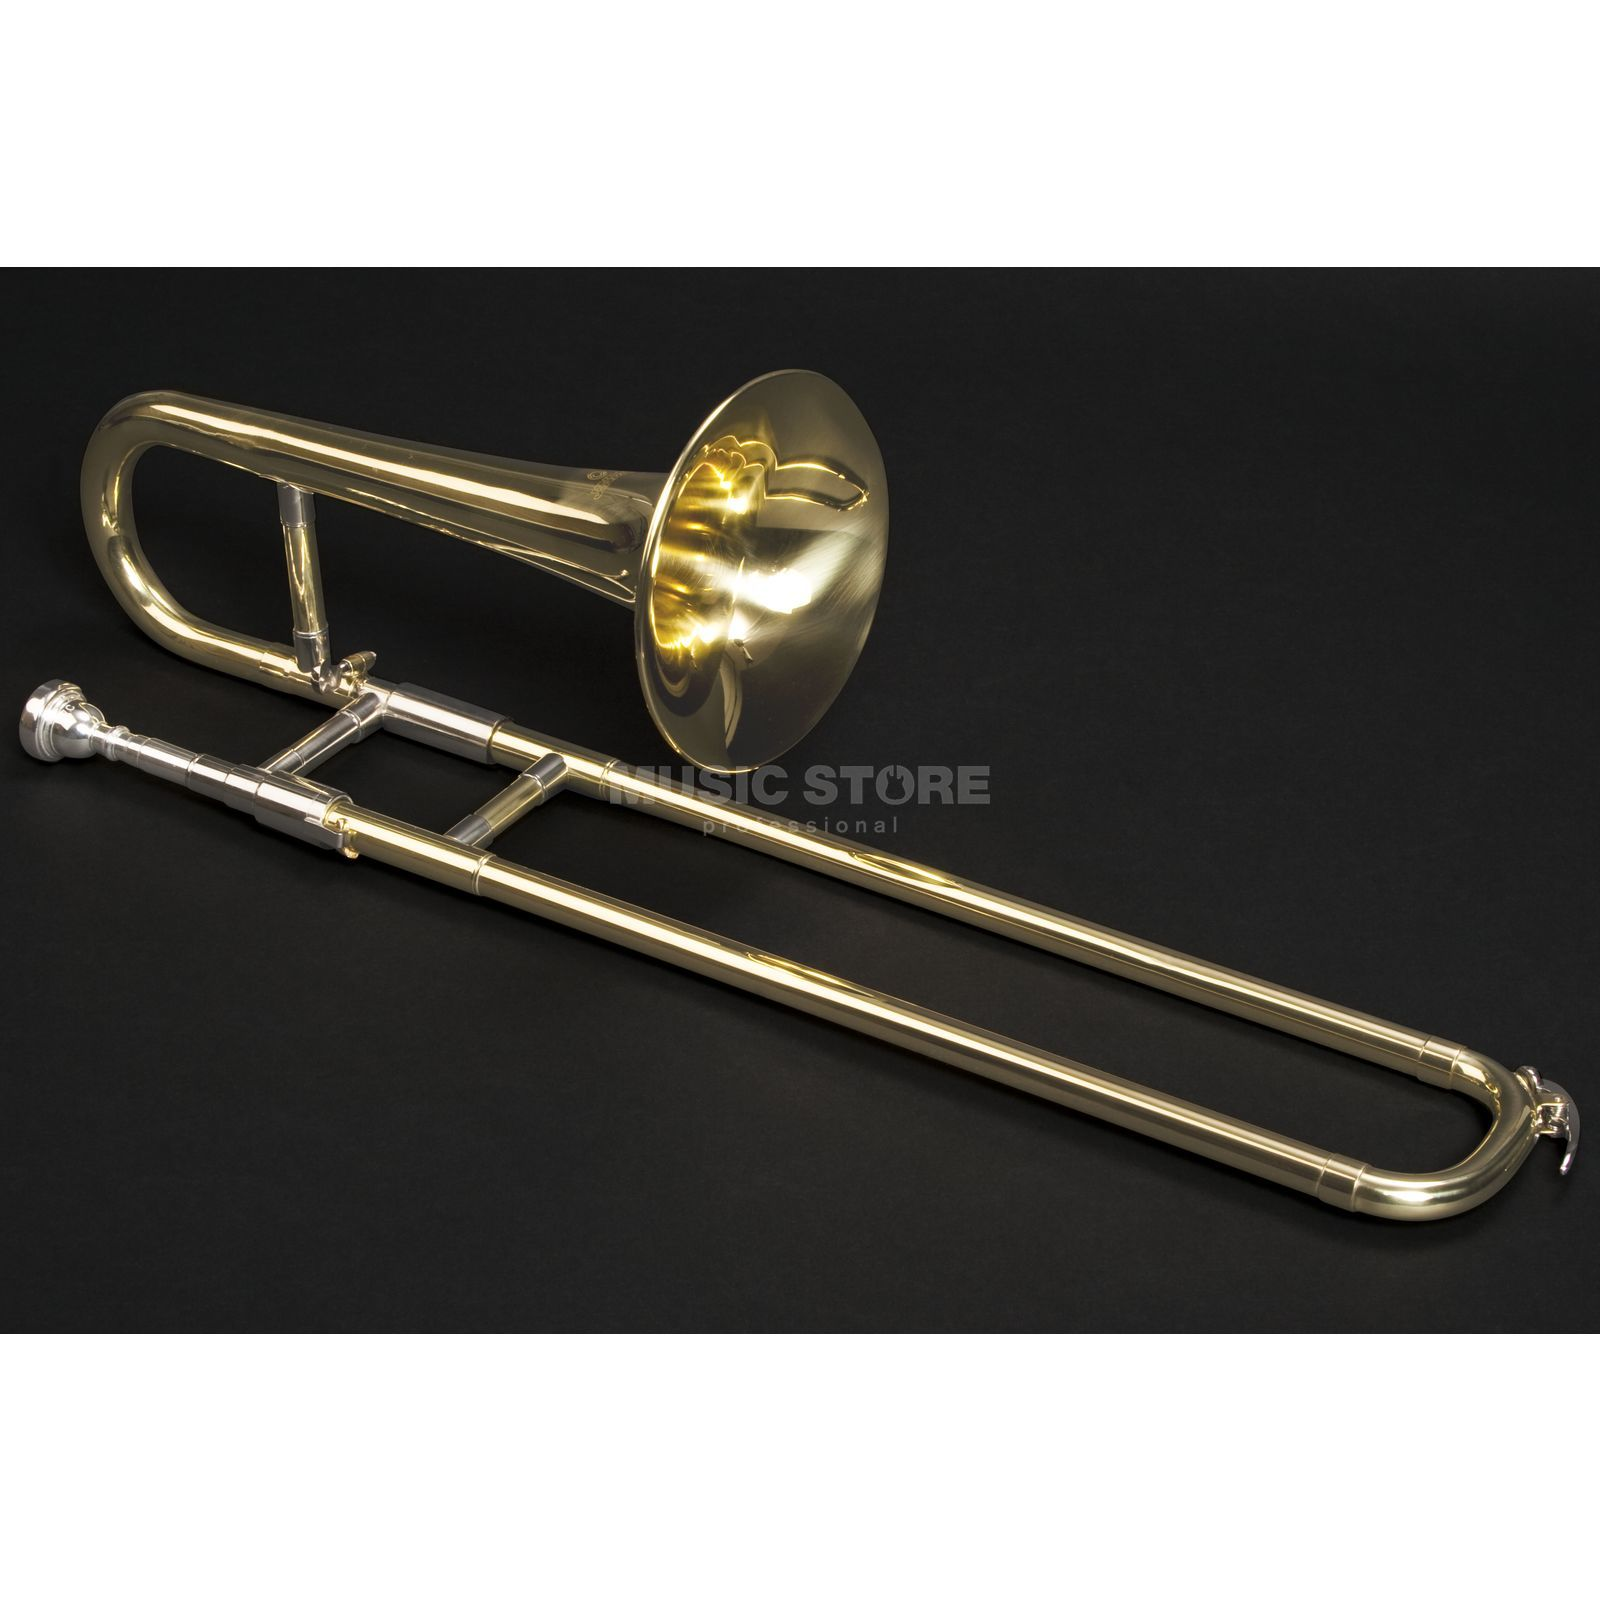 Monzani MZST-1800L Bb-Slide Trumpet Brass, Lacquered Изображение товара